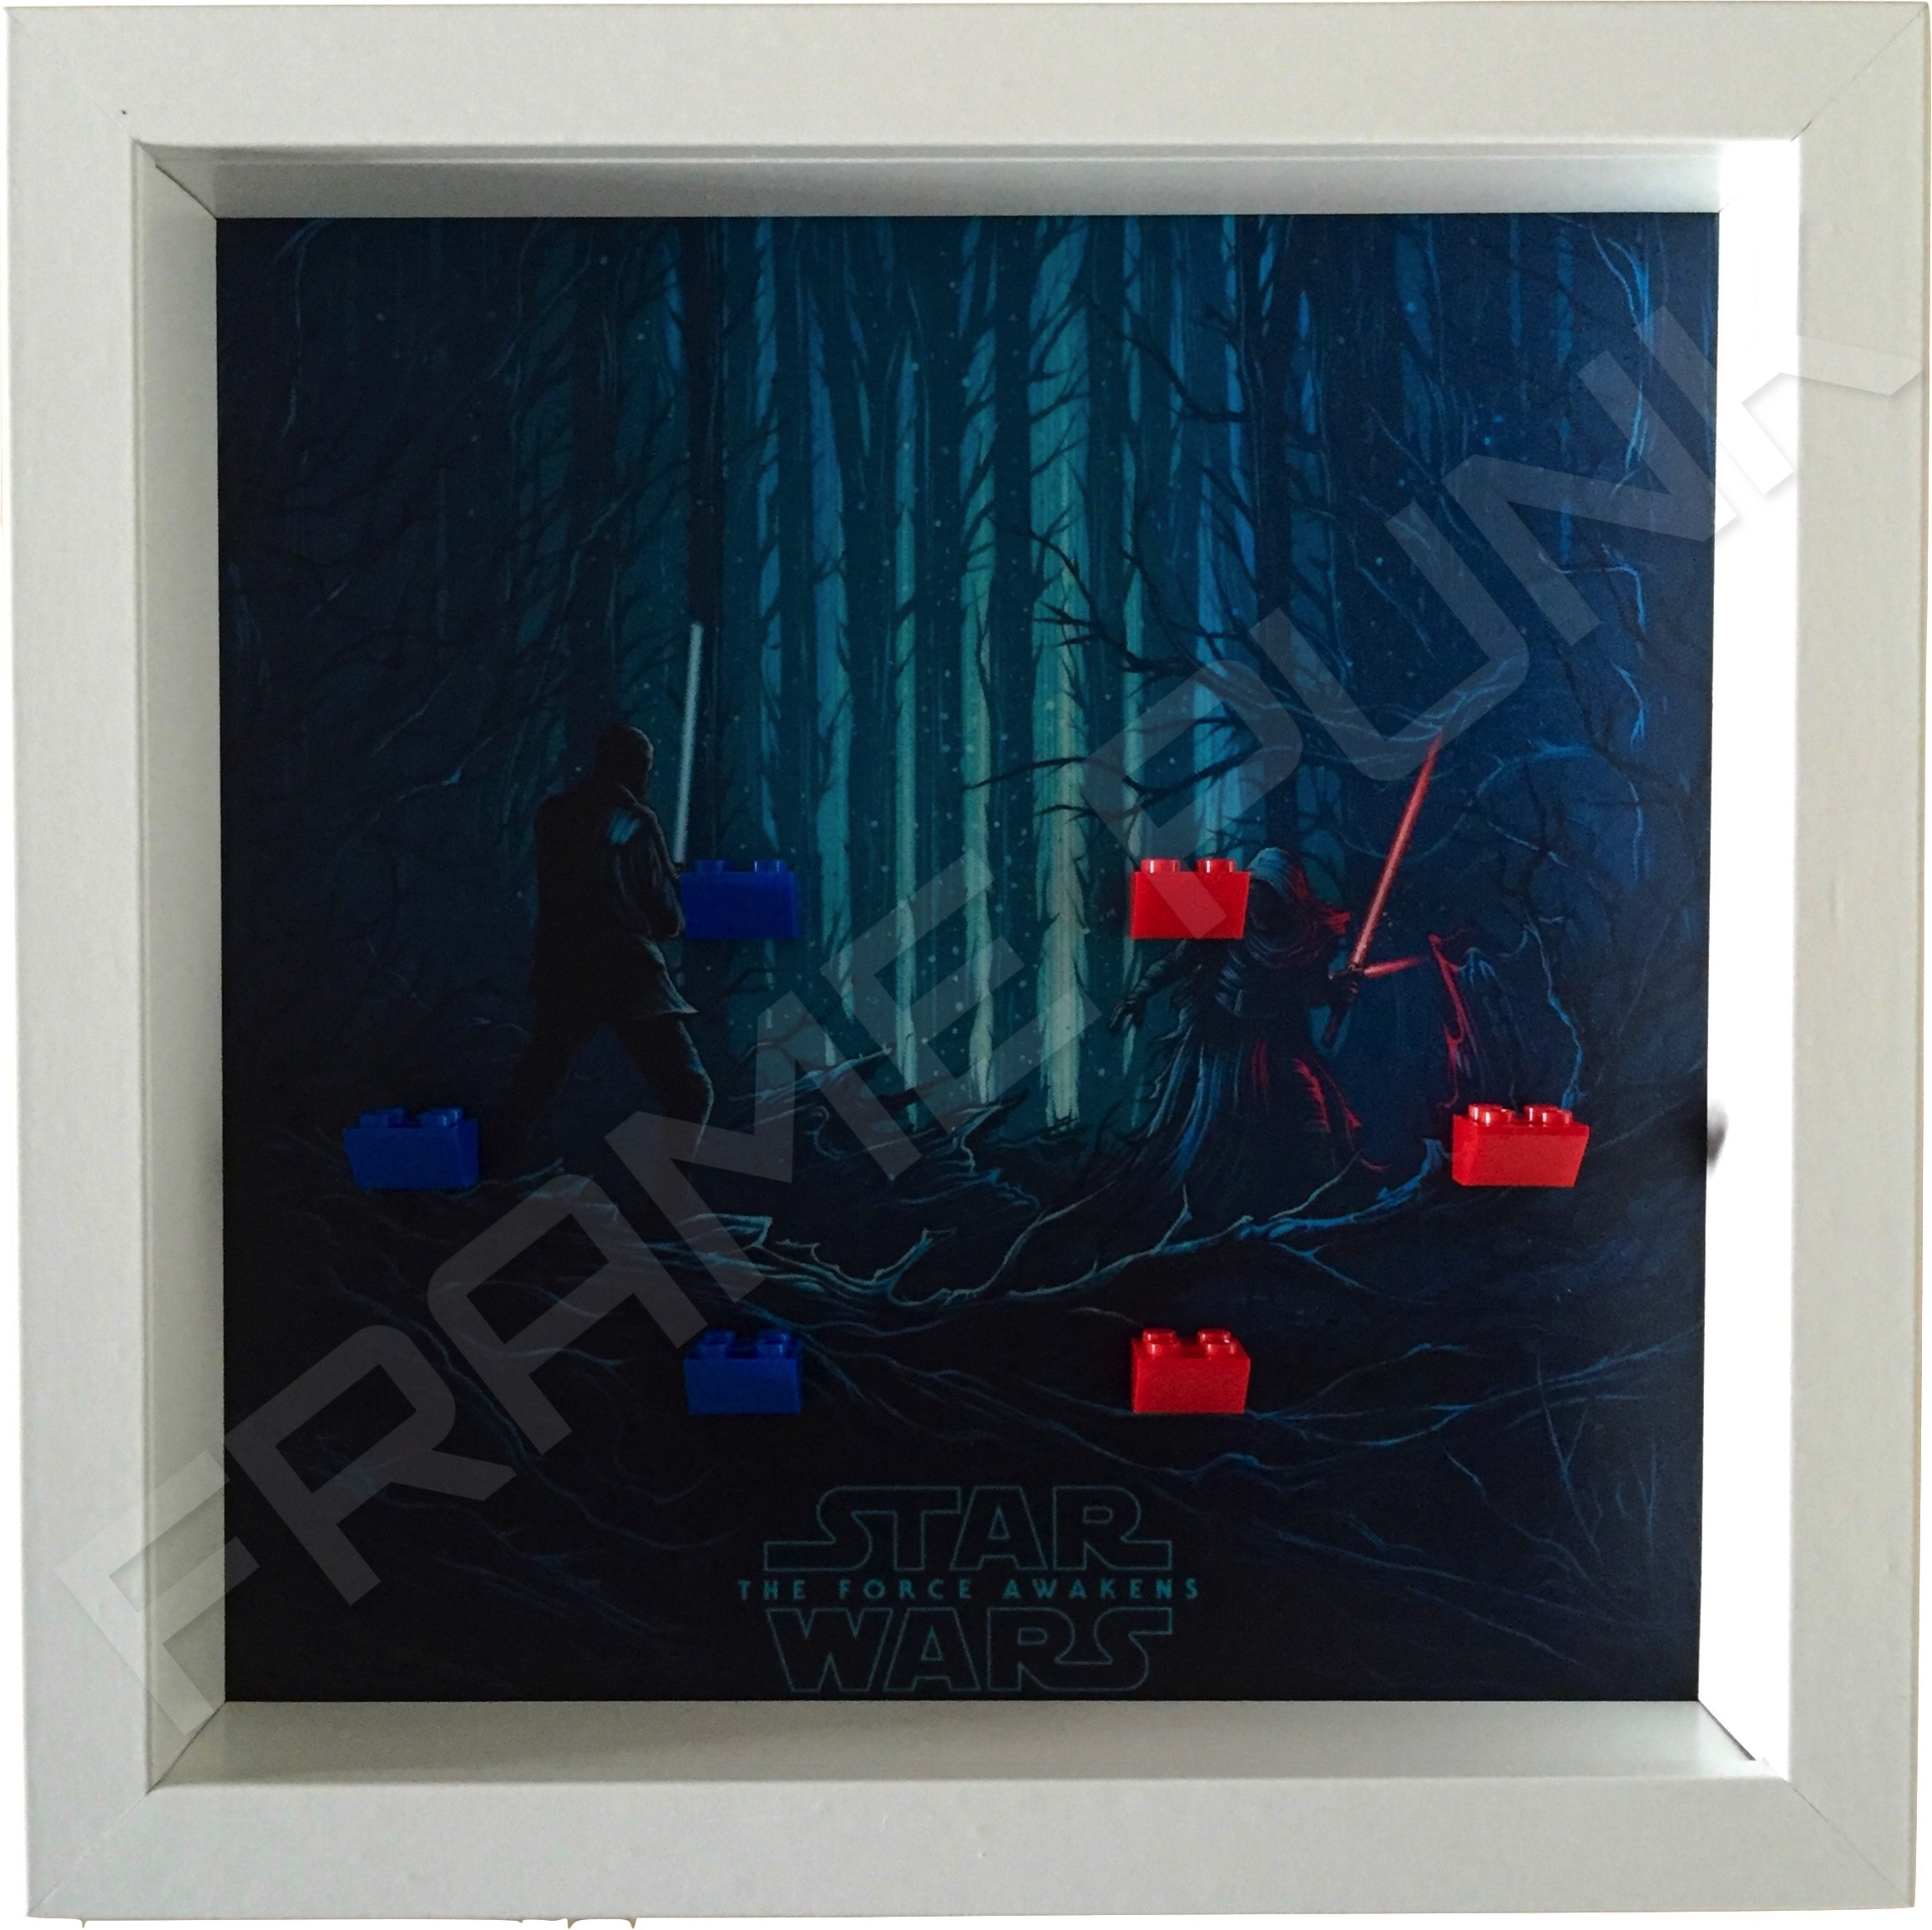 Star Wars - The Force Awakens White Frame Minifigure Display